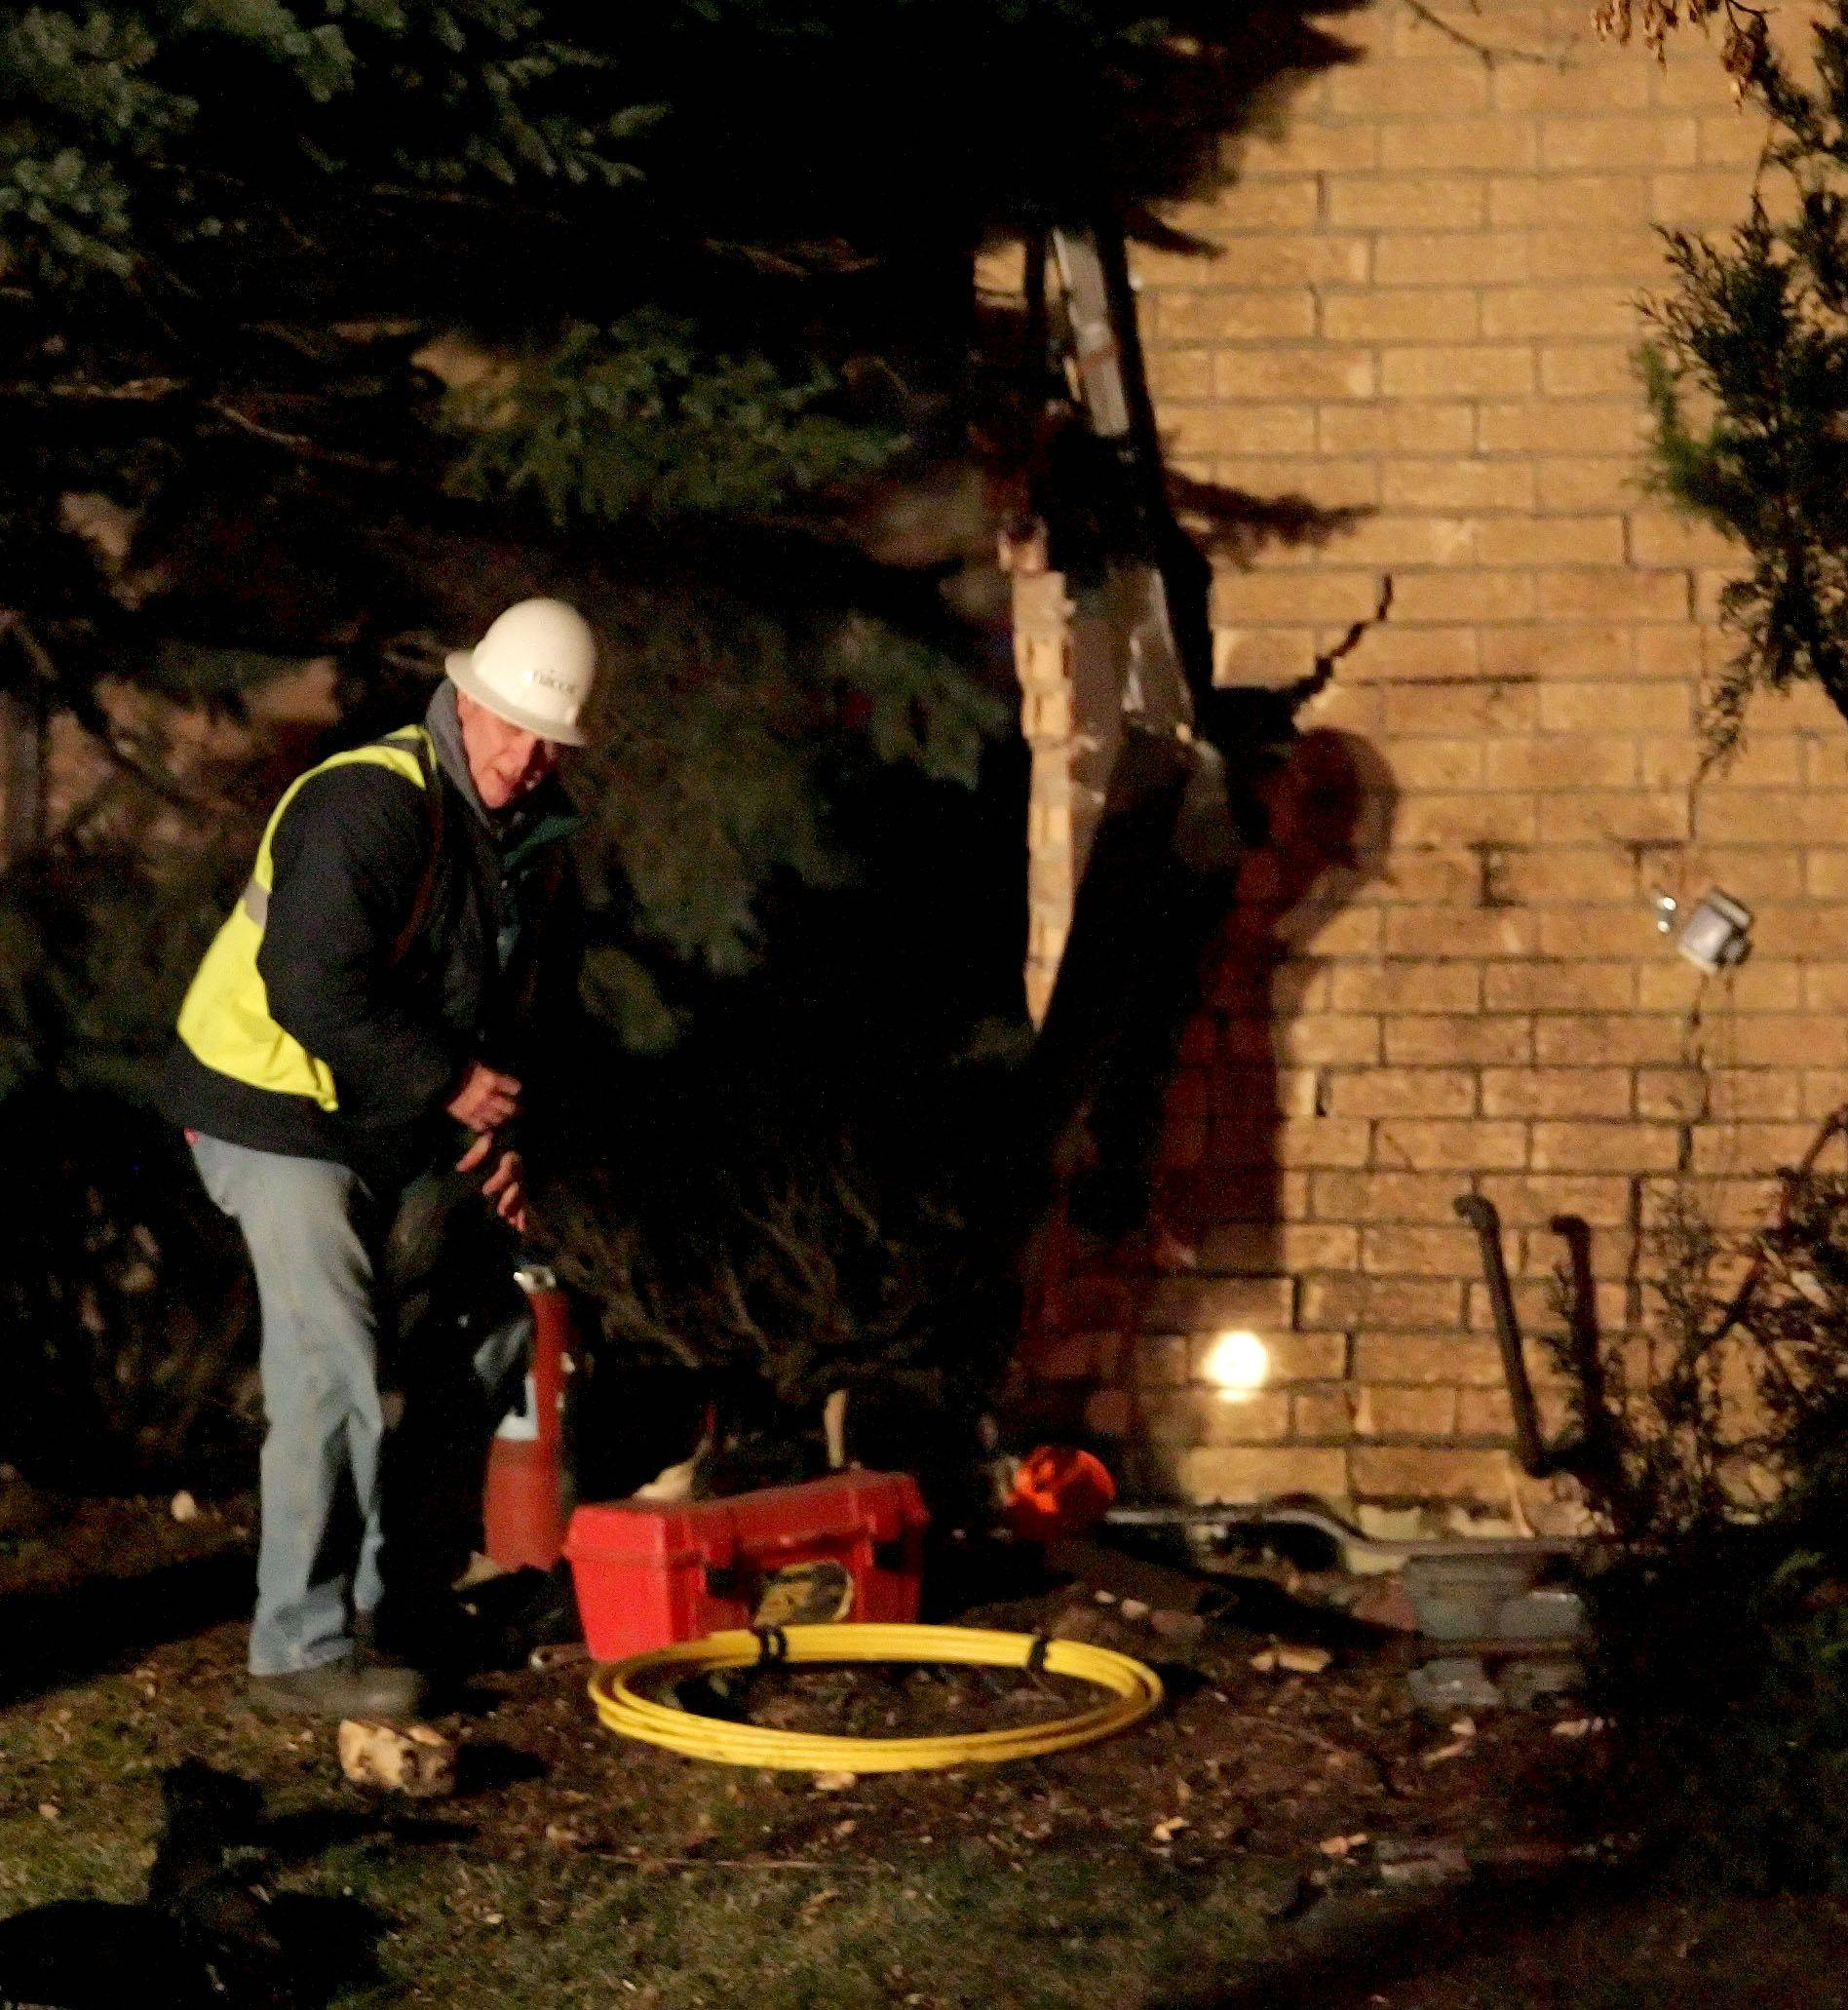 Crews investigate damage done to a house after a one-car accident at the intersection of Naperville Road and Farnham Lane in Wheaton on Tuesday.